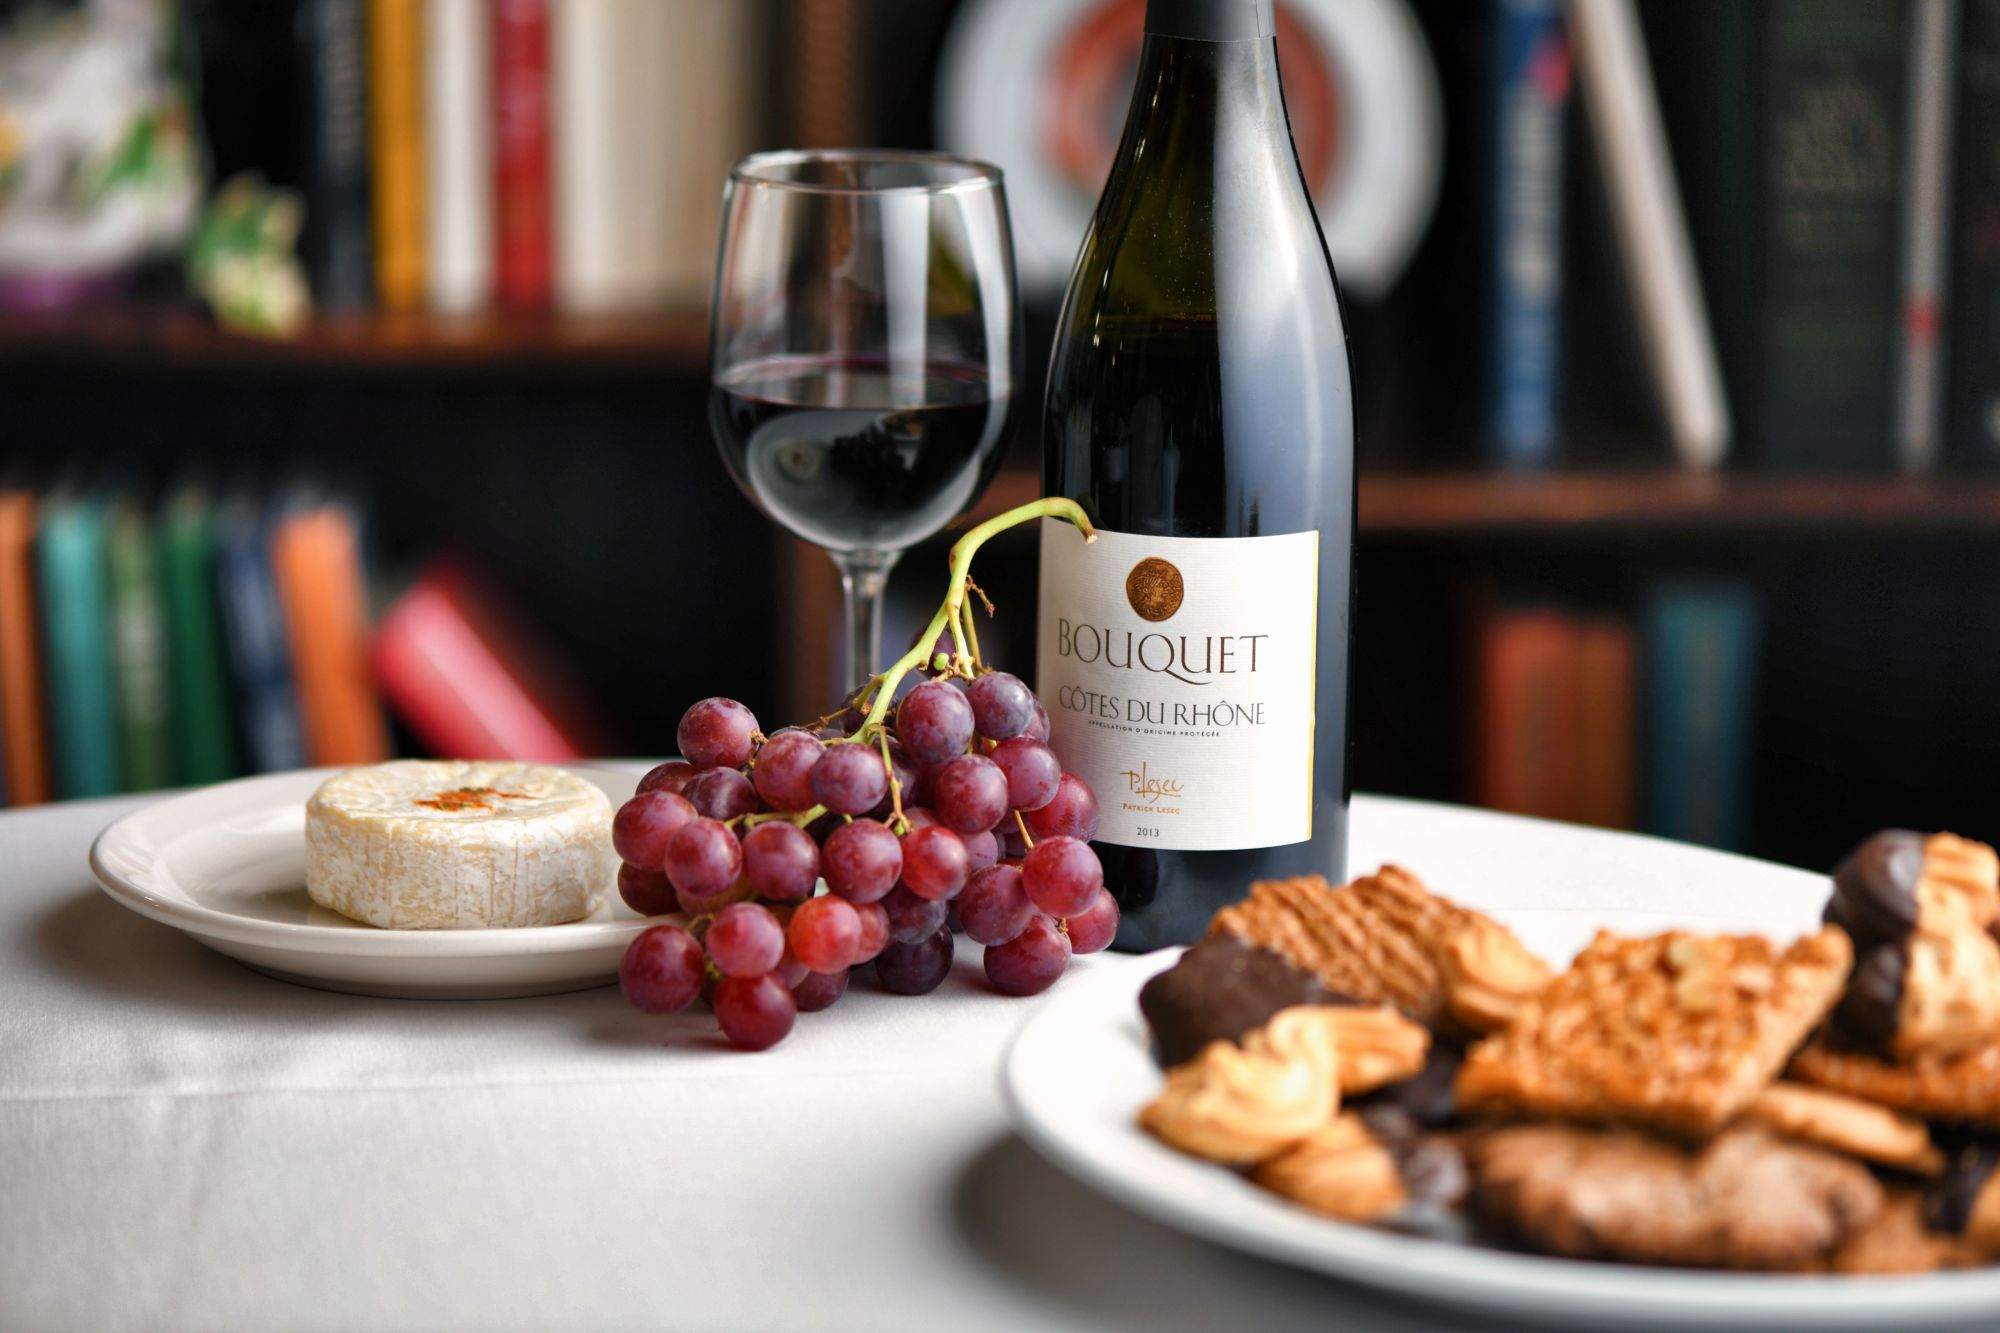 Red grapes, brie cheese, Cotes Du Rhone, plate of chocolate and butter cookies